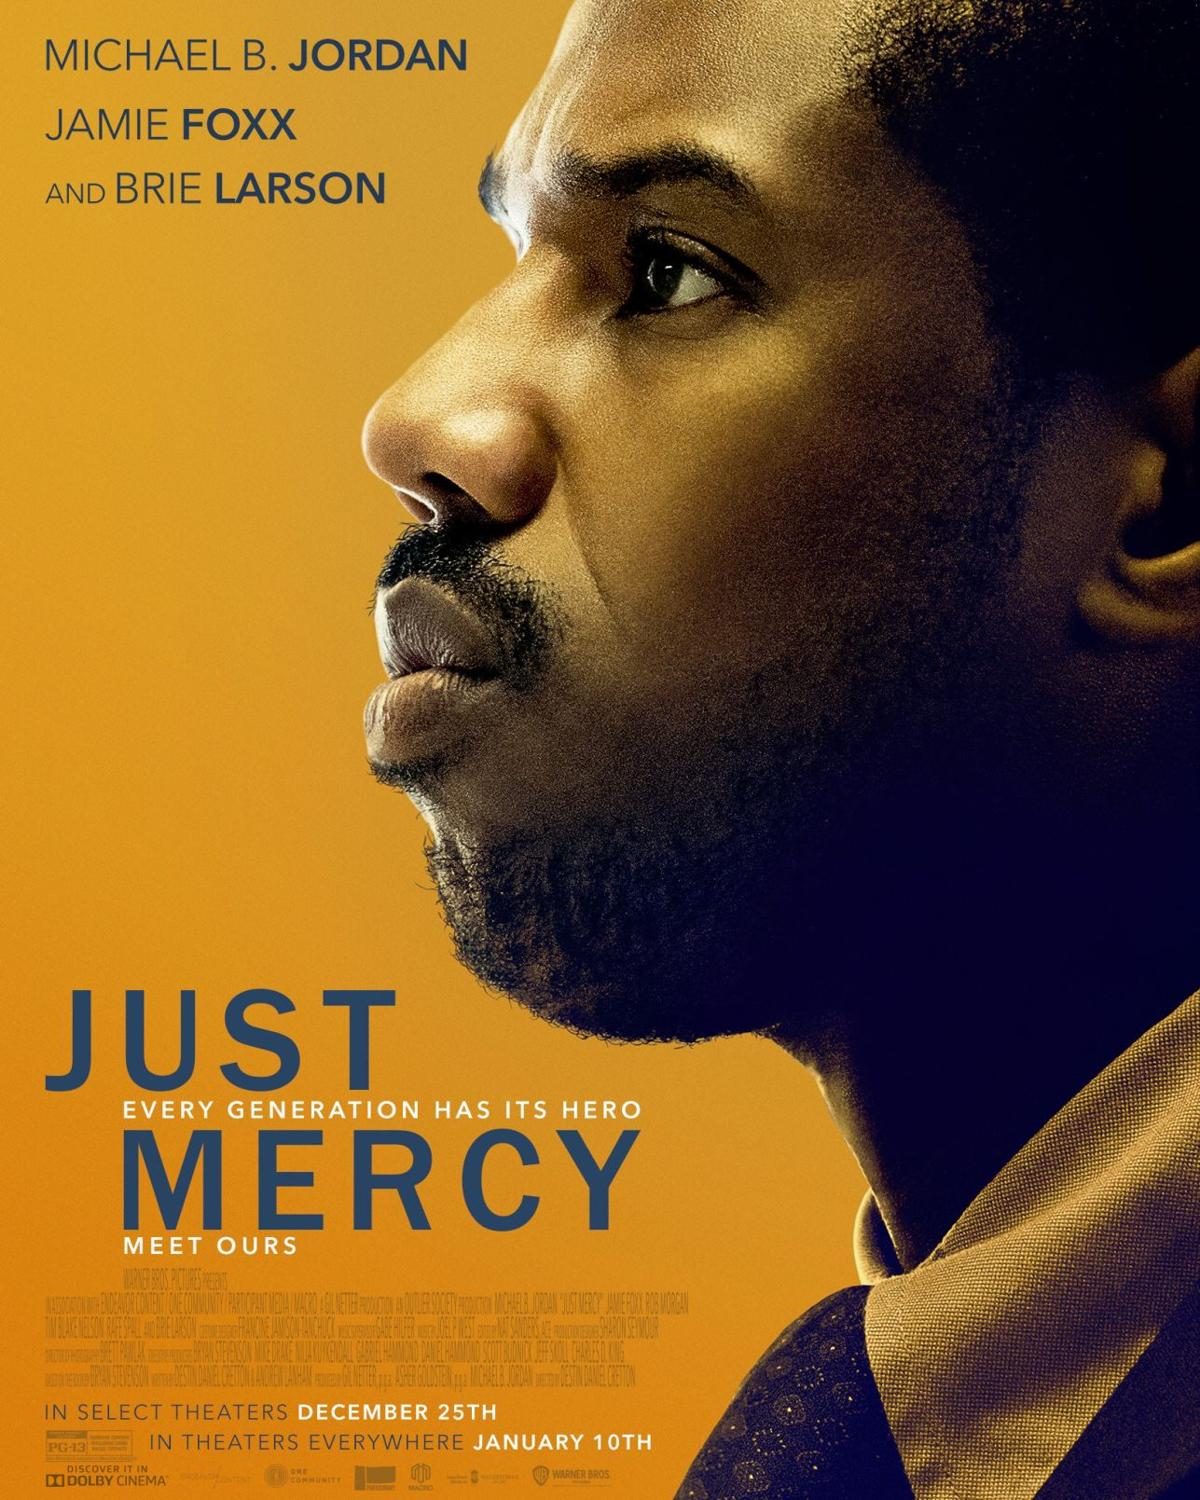 Michael B Jordan stands tall in a gray suit and blue shirt and tie, looking off into the distance.  Behind him, in muted yellow are scenes from the movie. Just Mercy is written in white, along with names of actors, Michael B Jordan, Jamie Foxx, and Brie Larson